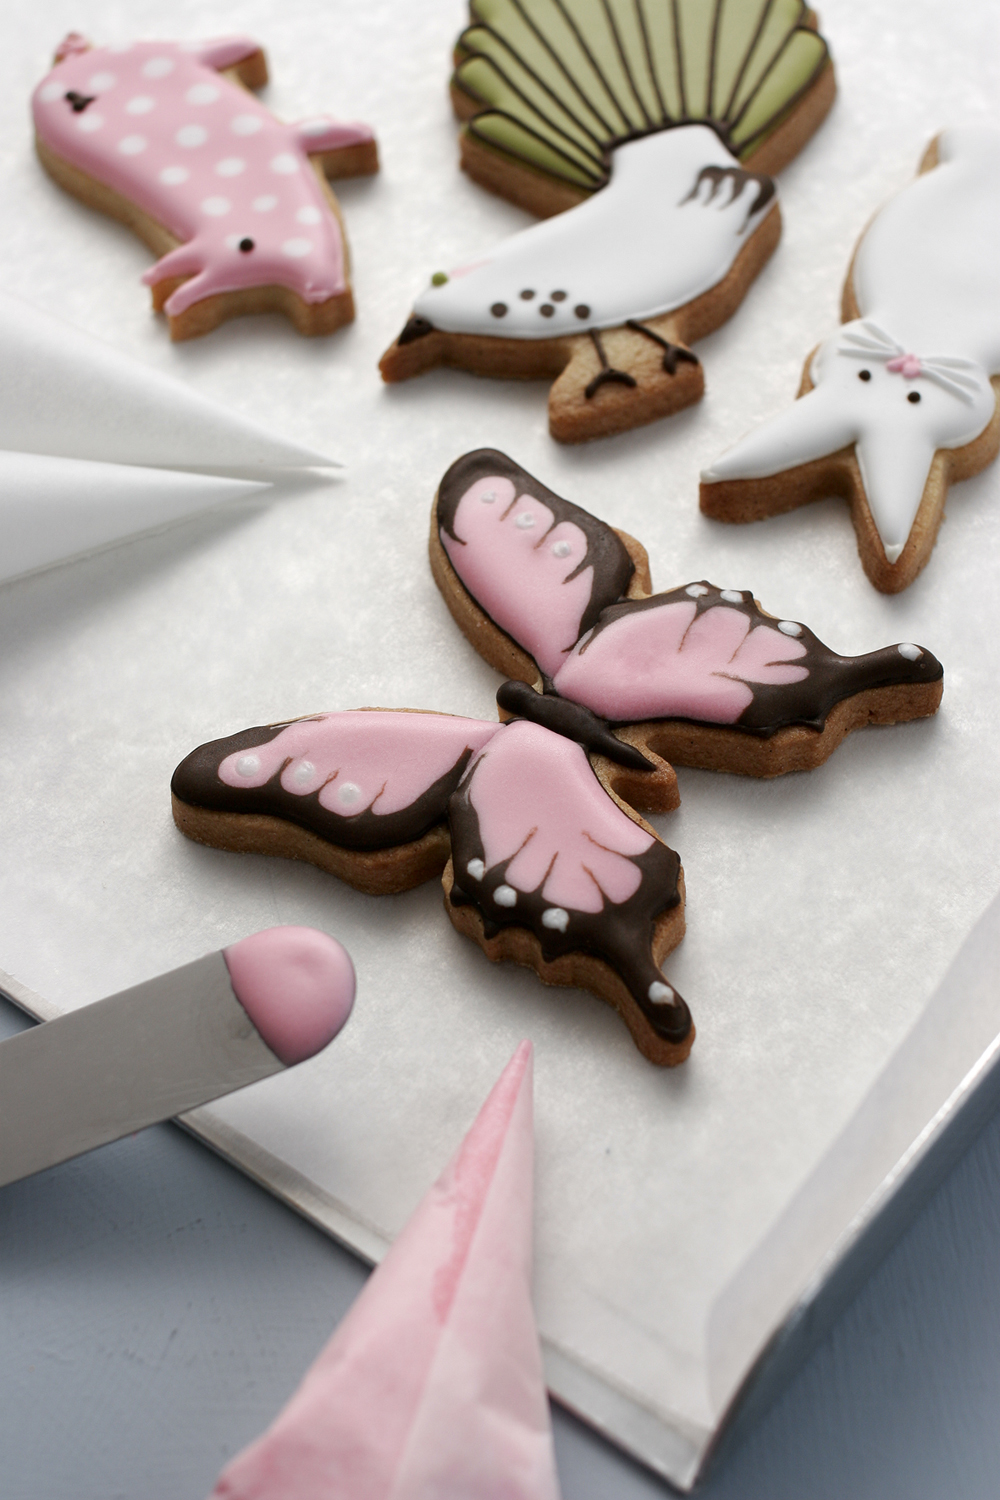 animal-icing-workshop.jpg